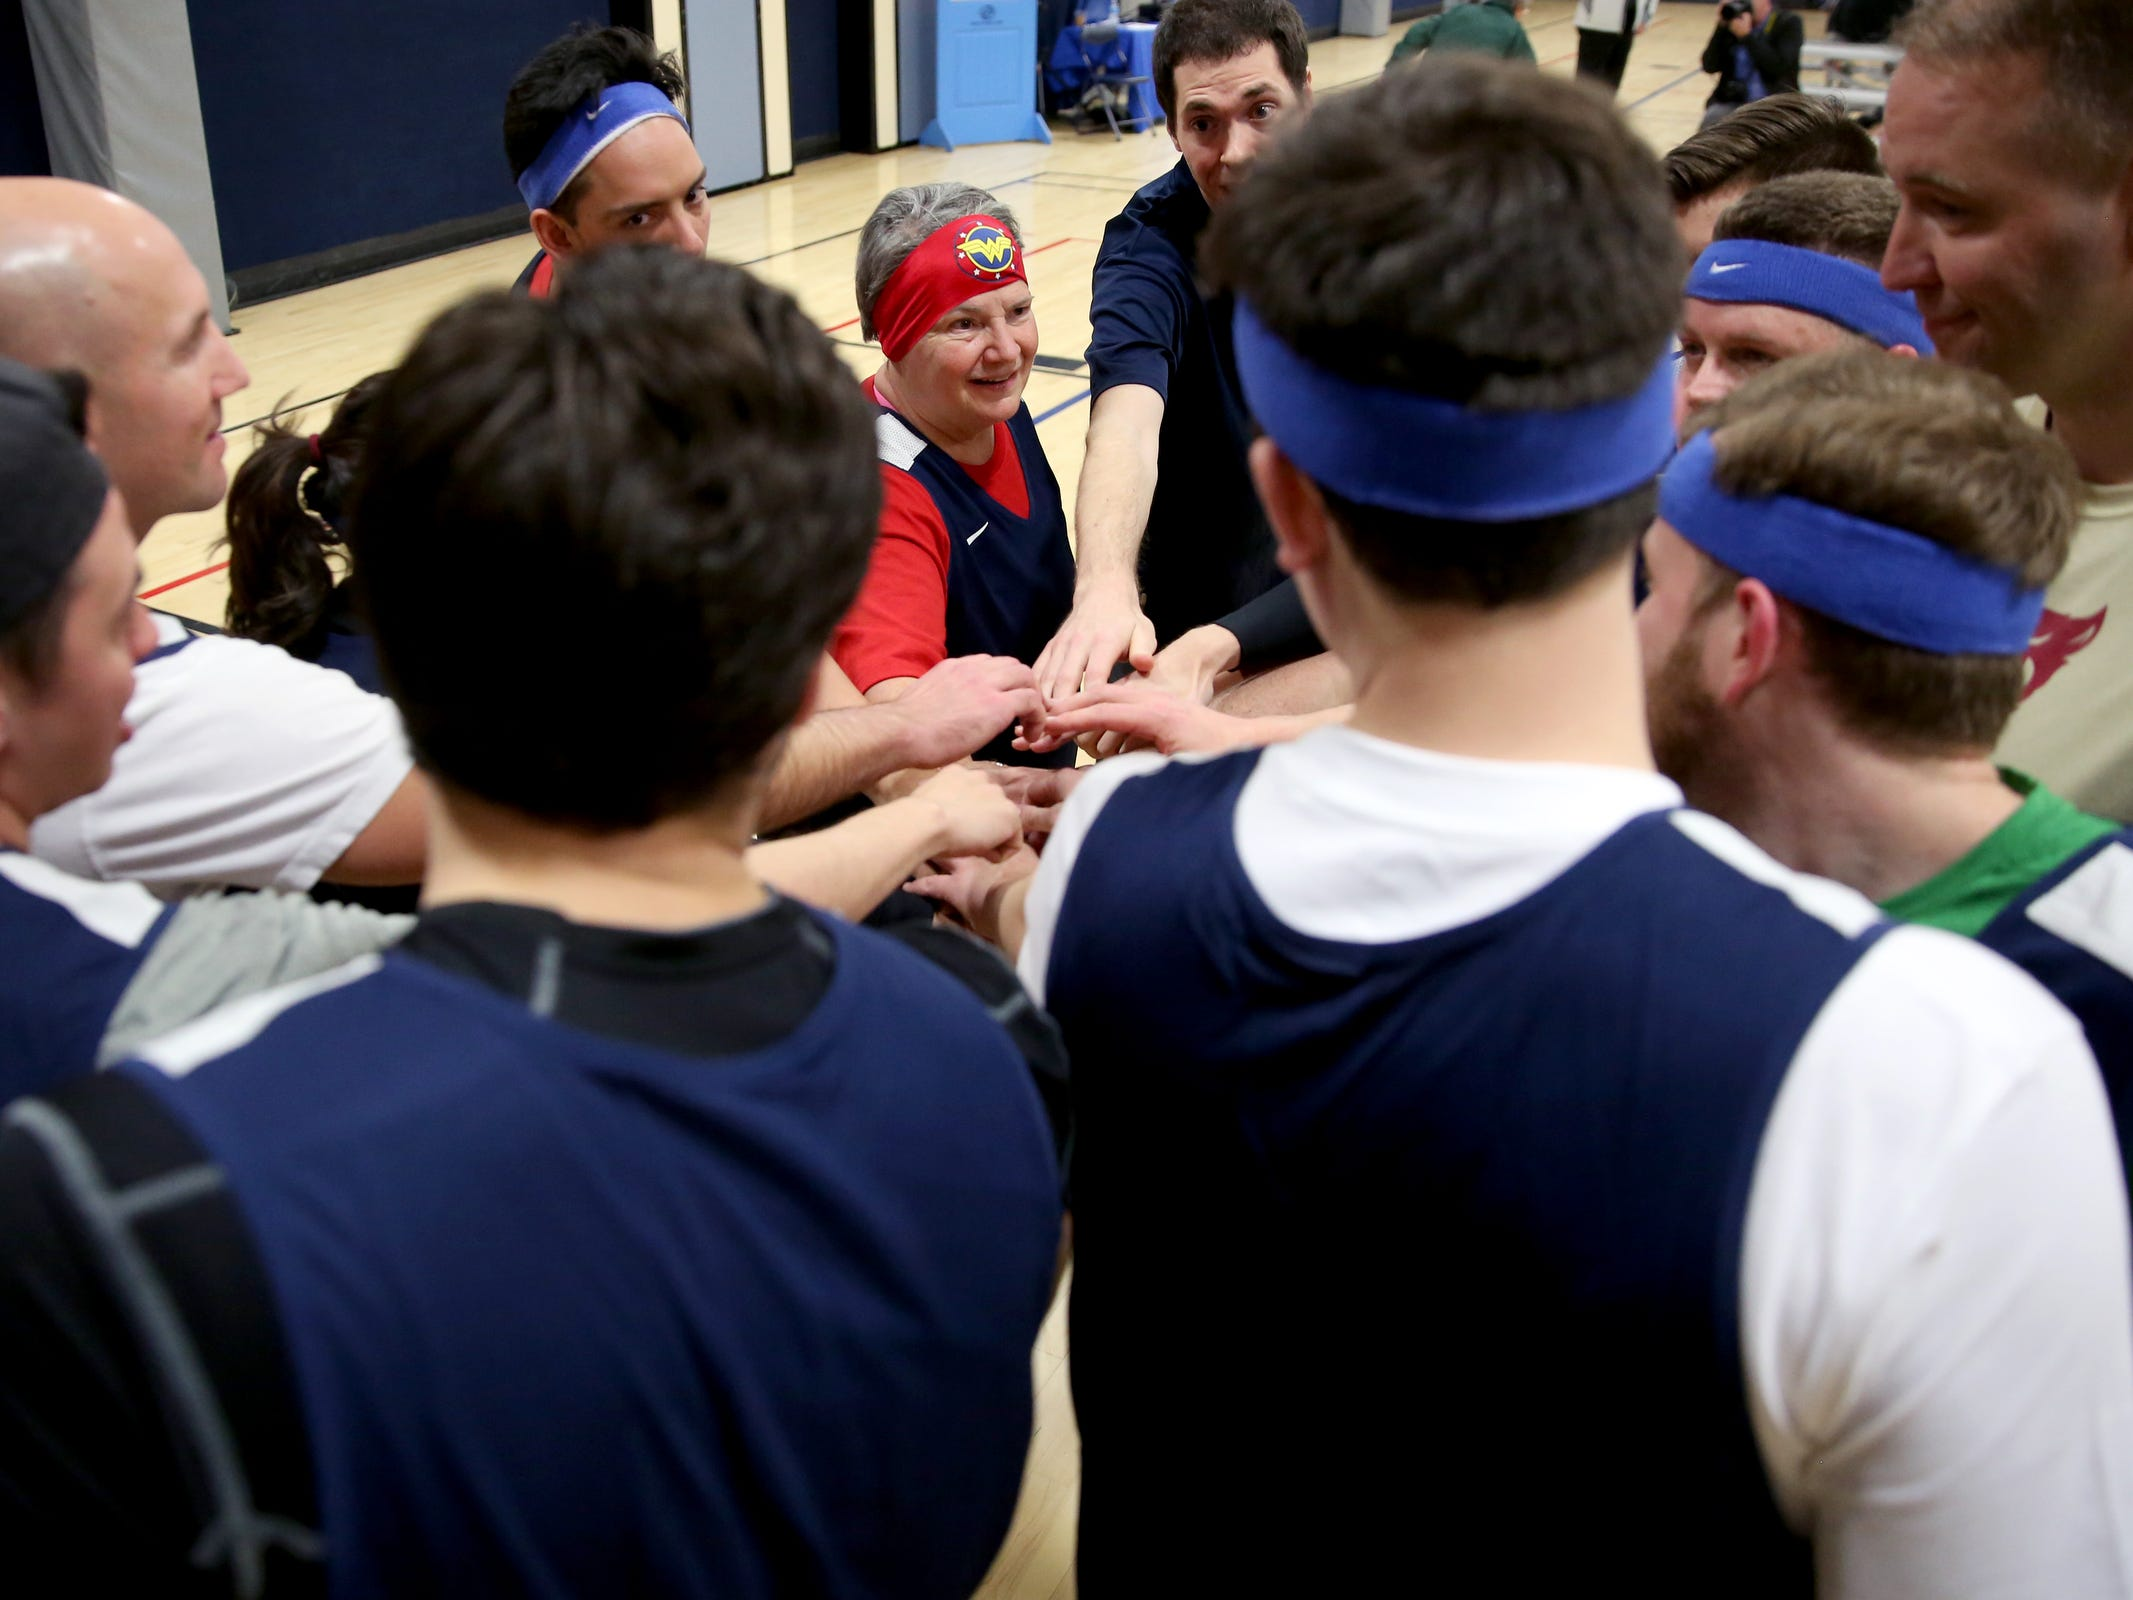 A House team, with Rep. Carla Piluso, huddles together before the start of the second annual House vs. Senate charity basketball tournament at the Boys & Girls Club in Salem on March 13, 2019. The tournament raised more than $10,000 for the Oregon Alliance of Boys & Girls Clubs.